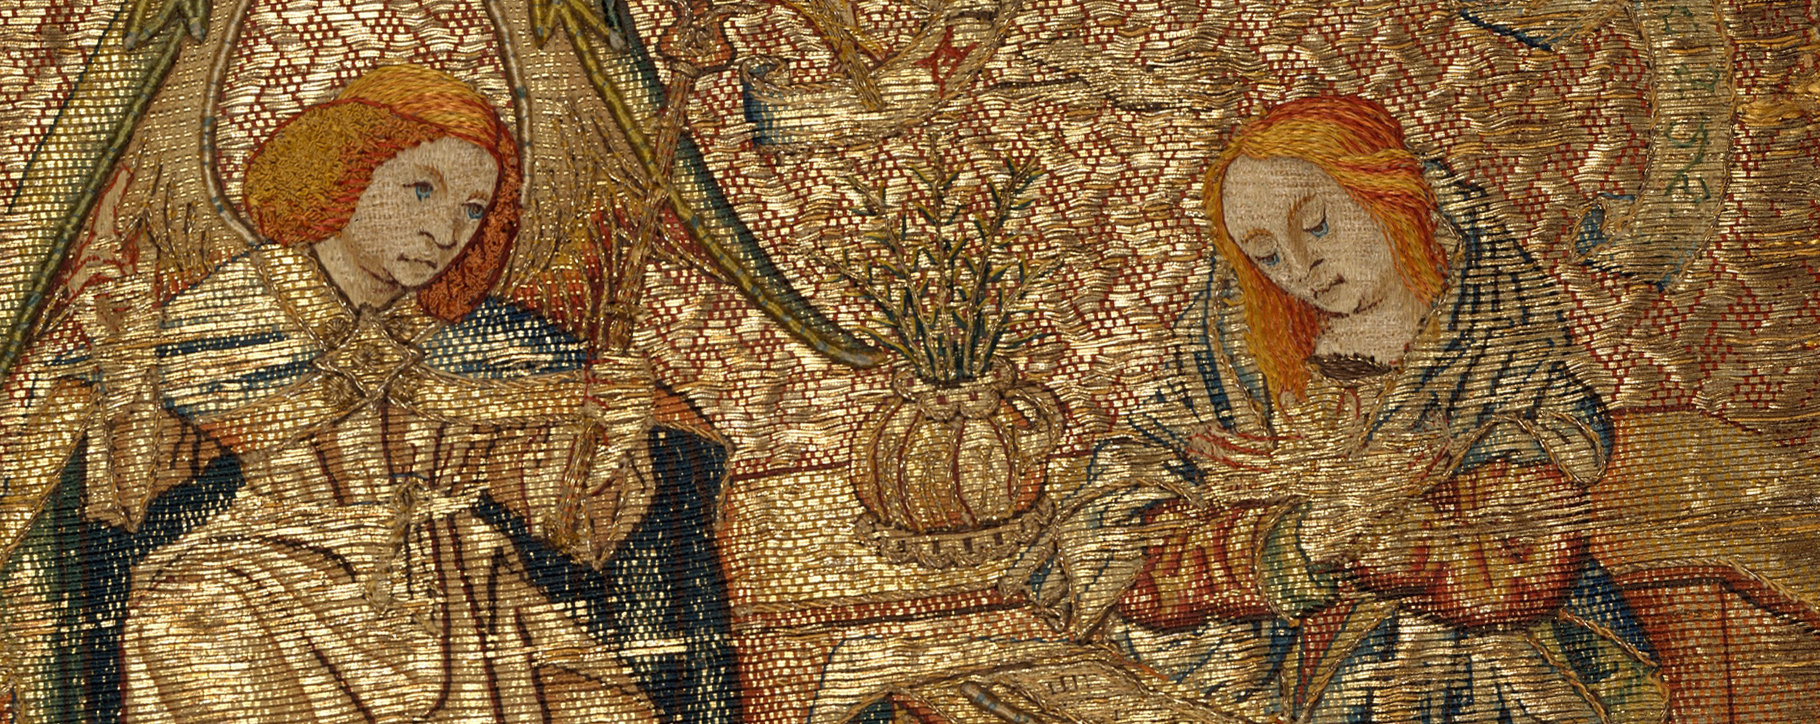 Gold Embroidery Textile